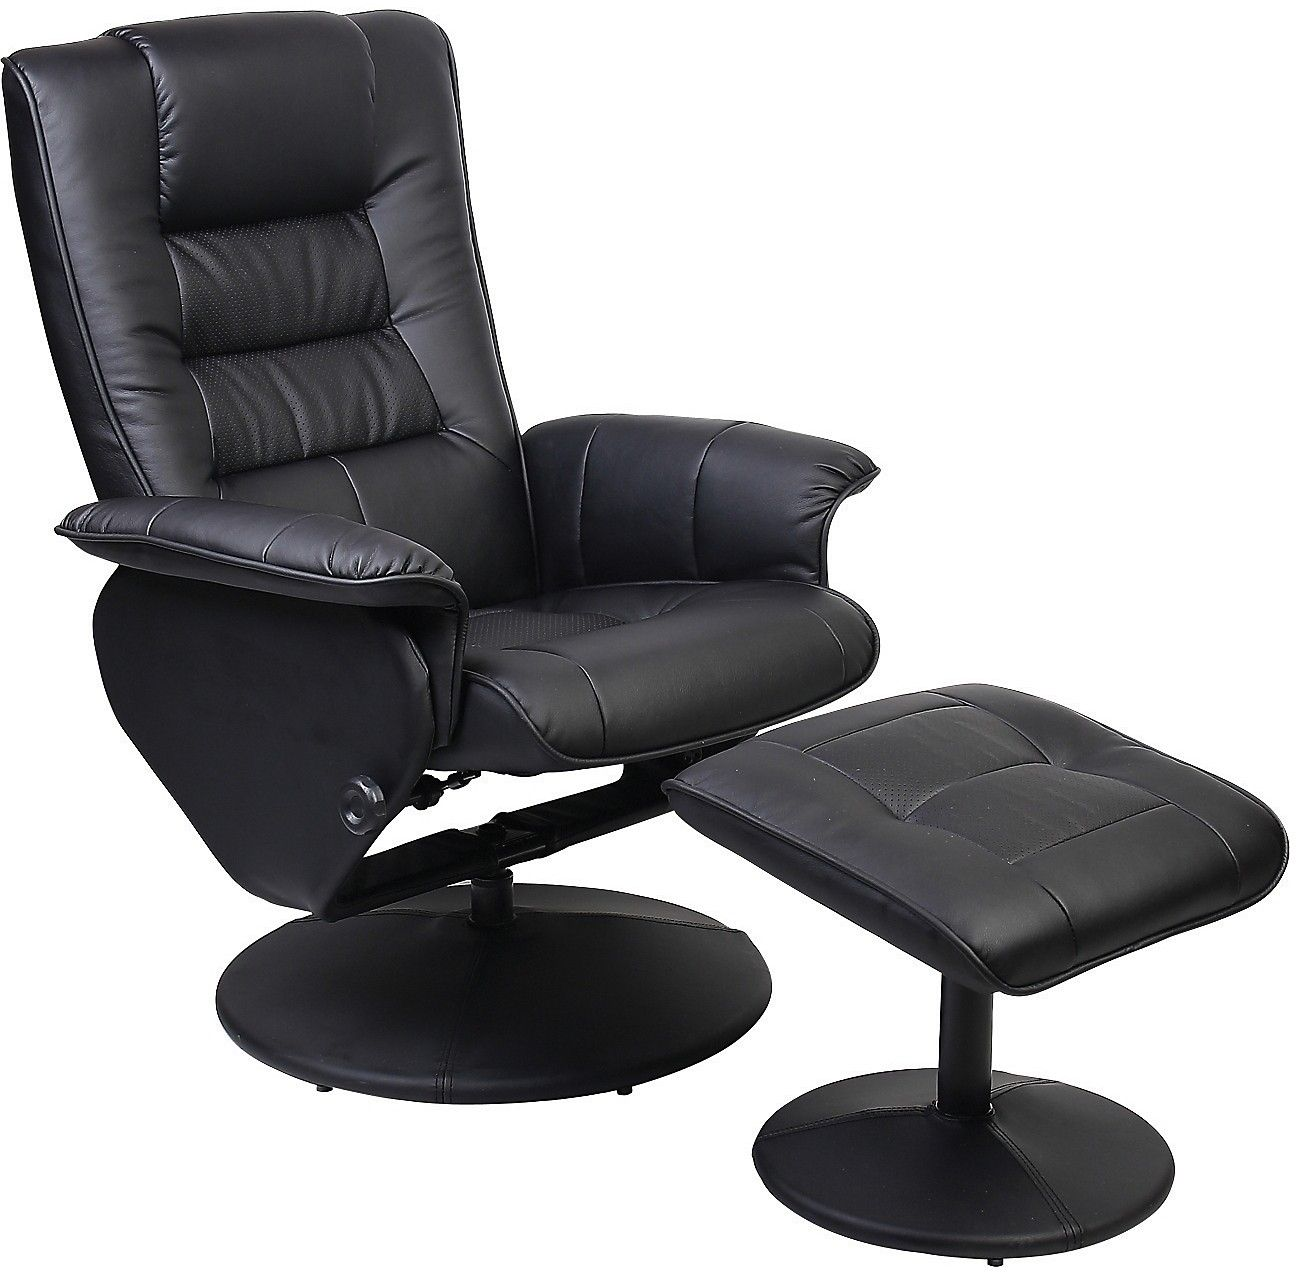 boucle motor cocoa dual in product berwick recliner grande chairs riser standard reclining or petite